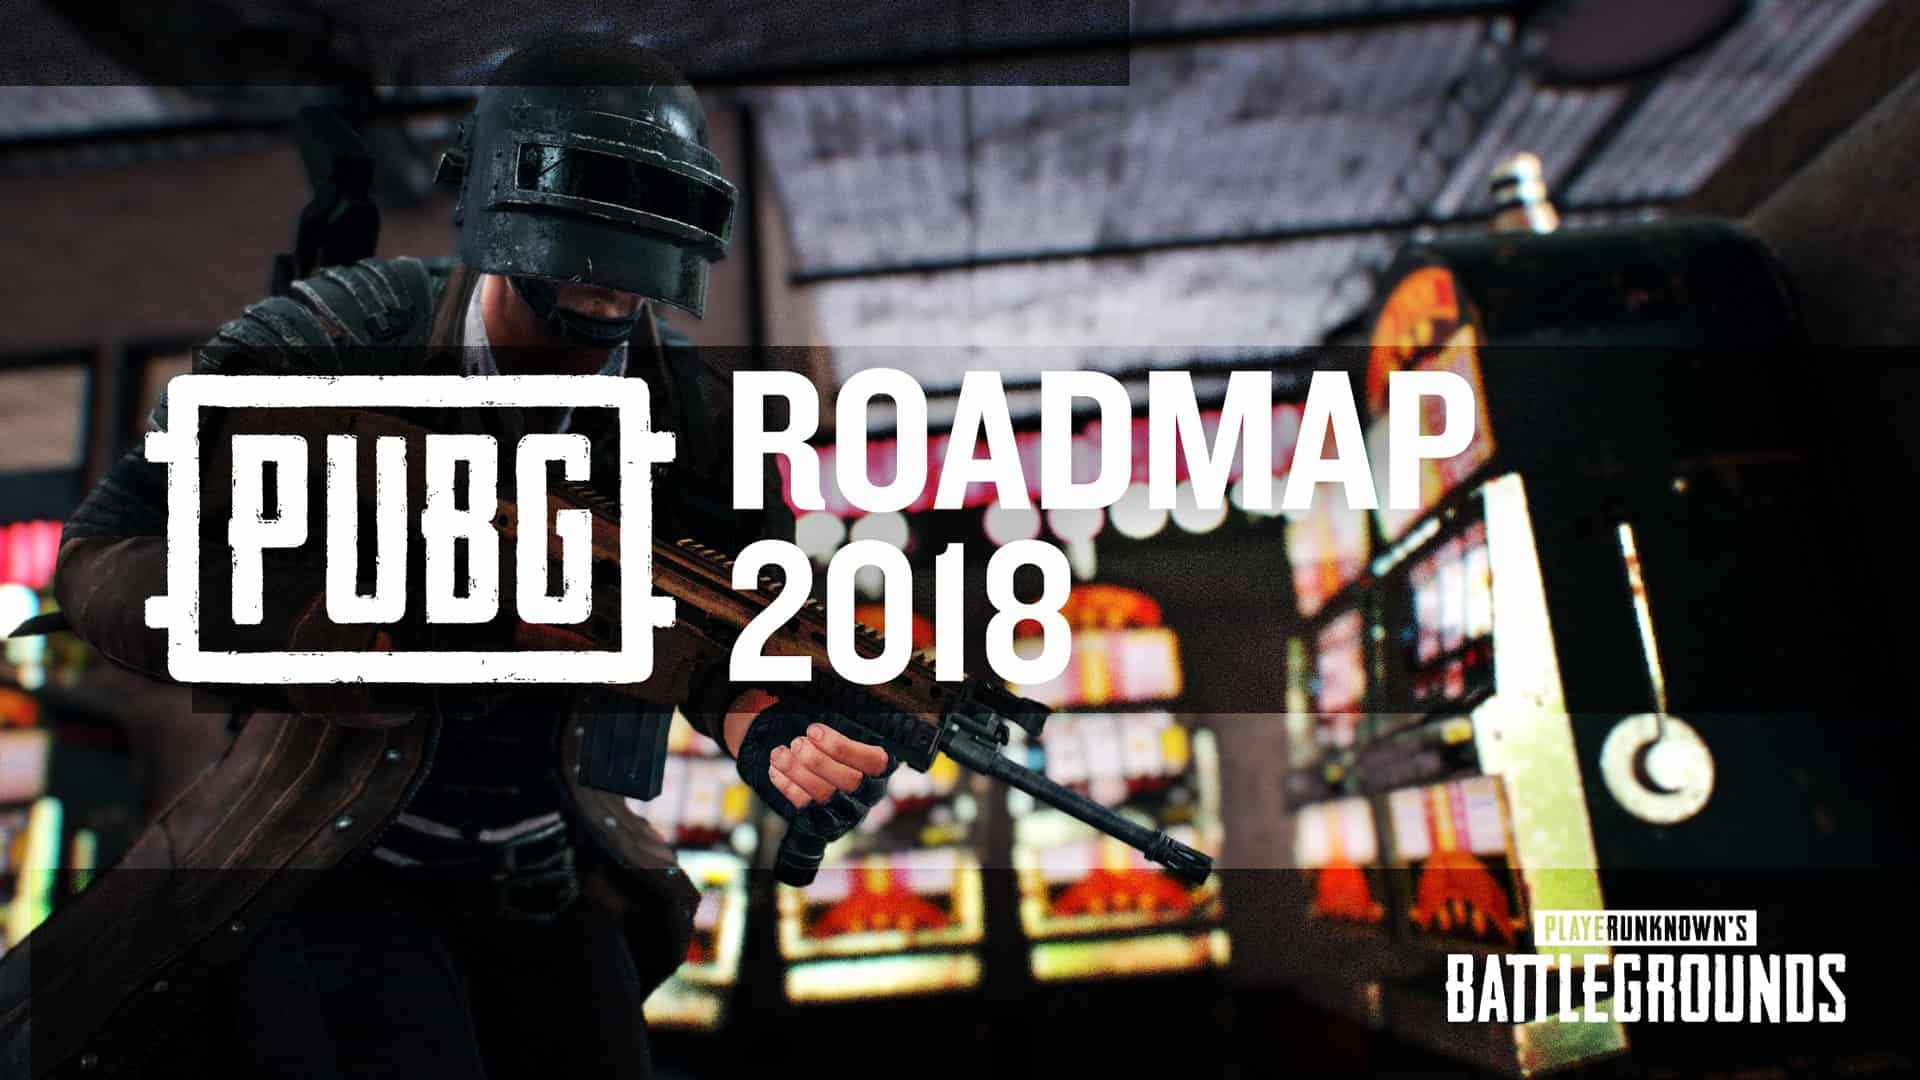 PUBG 2018 roadmap confirms new 4x4km map and emote system